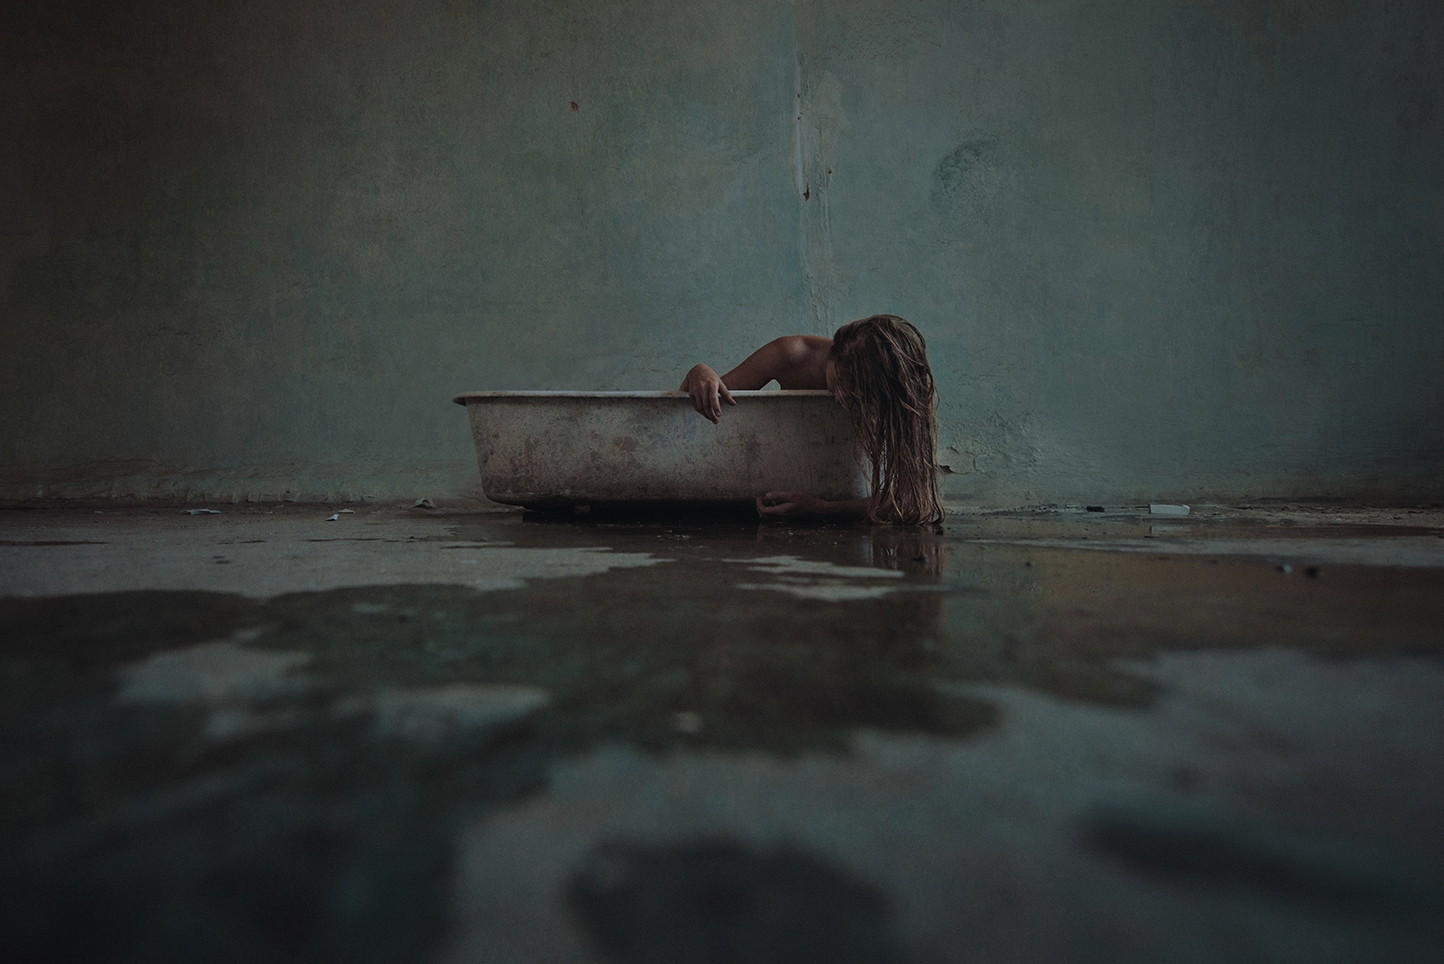 """Bath"" — Photographer: David Sm - darkbeautymag 